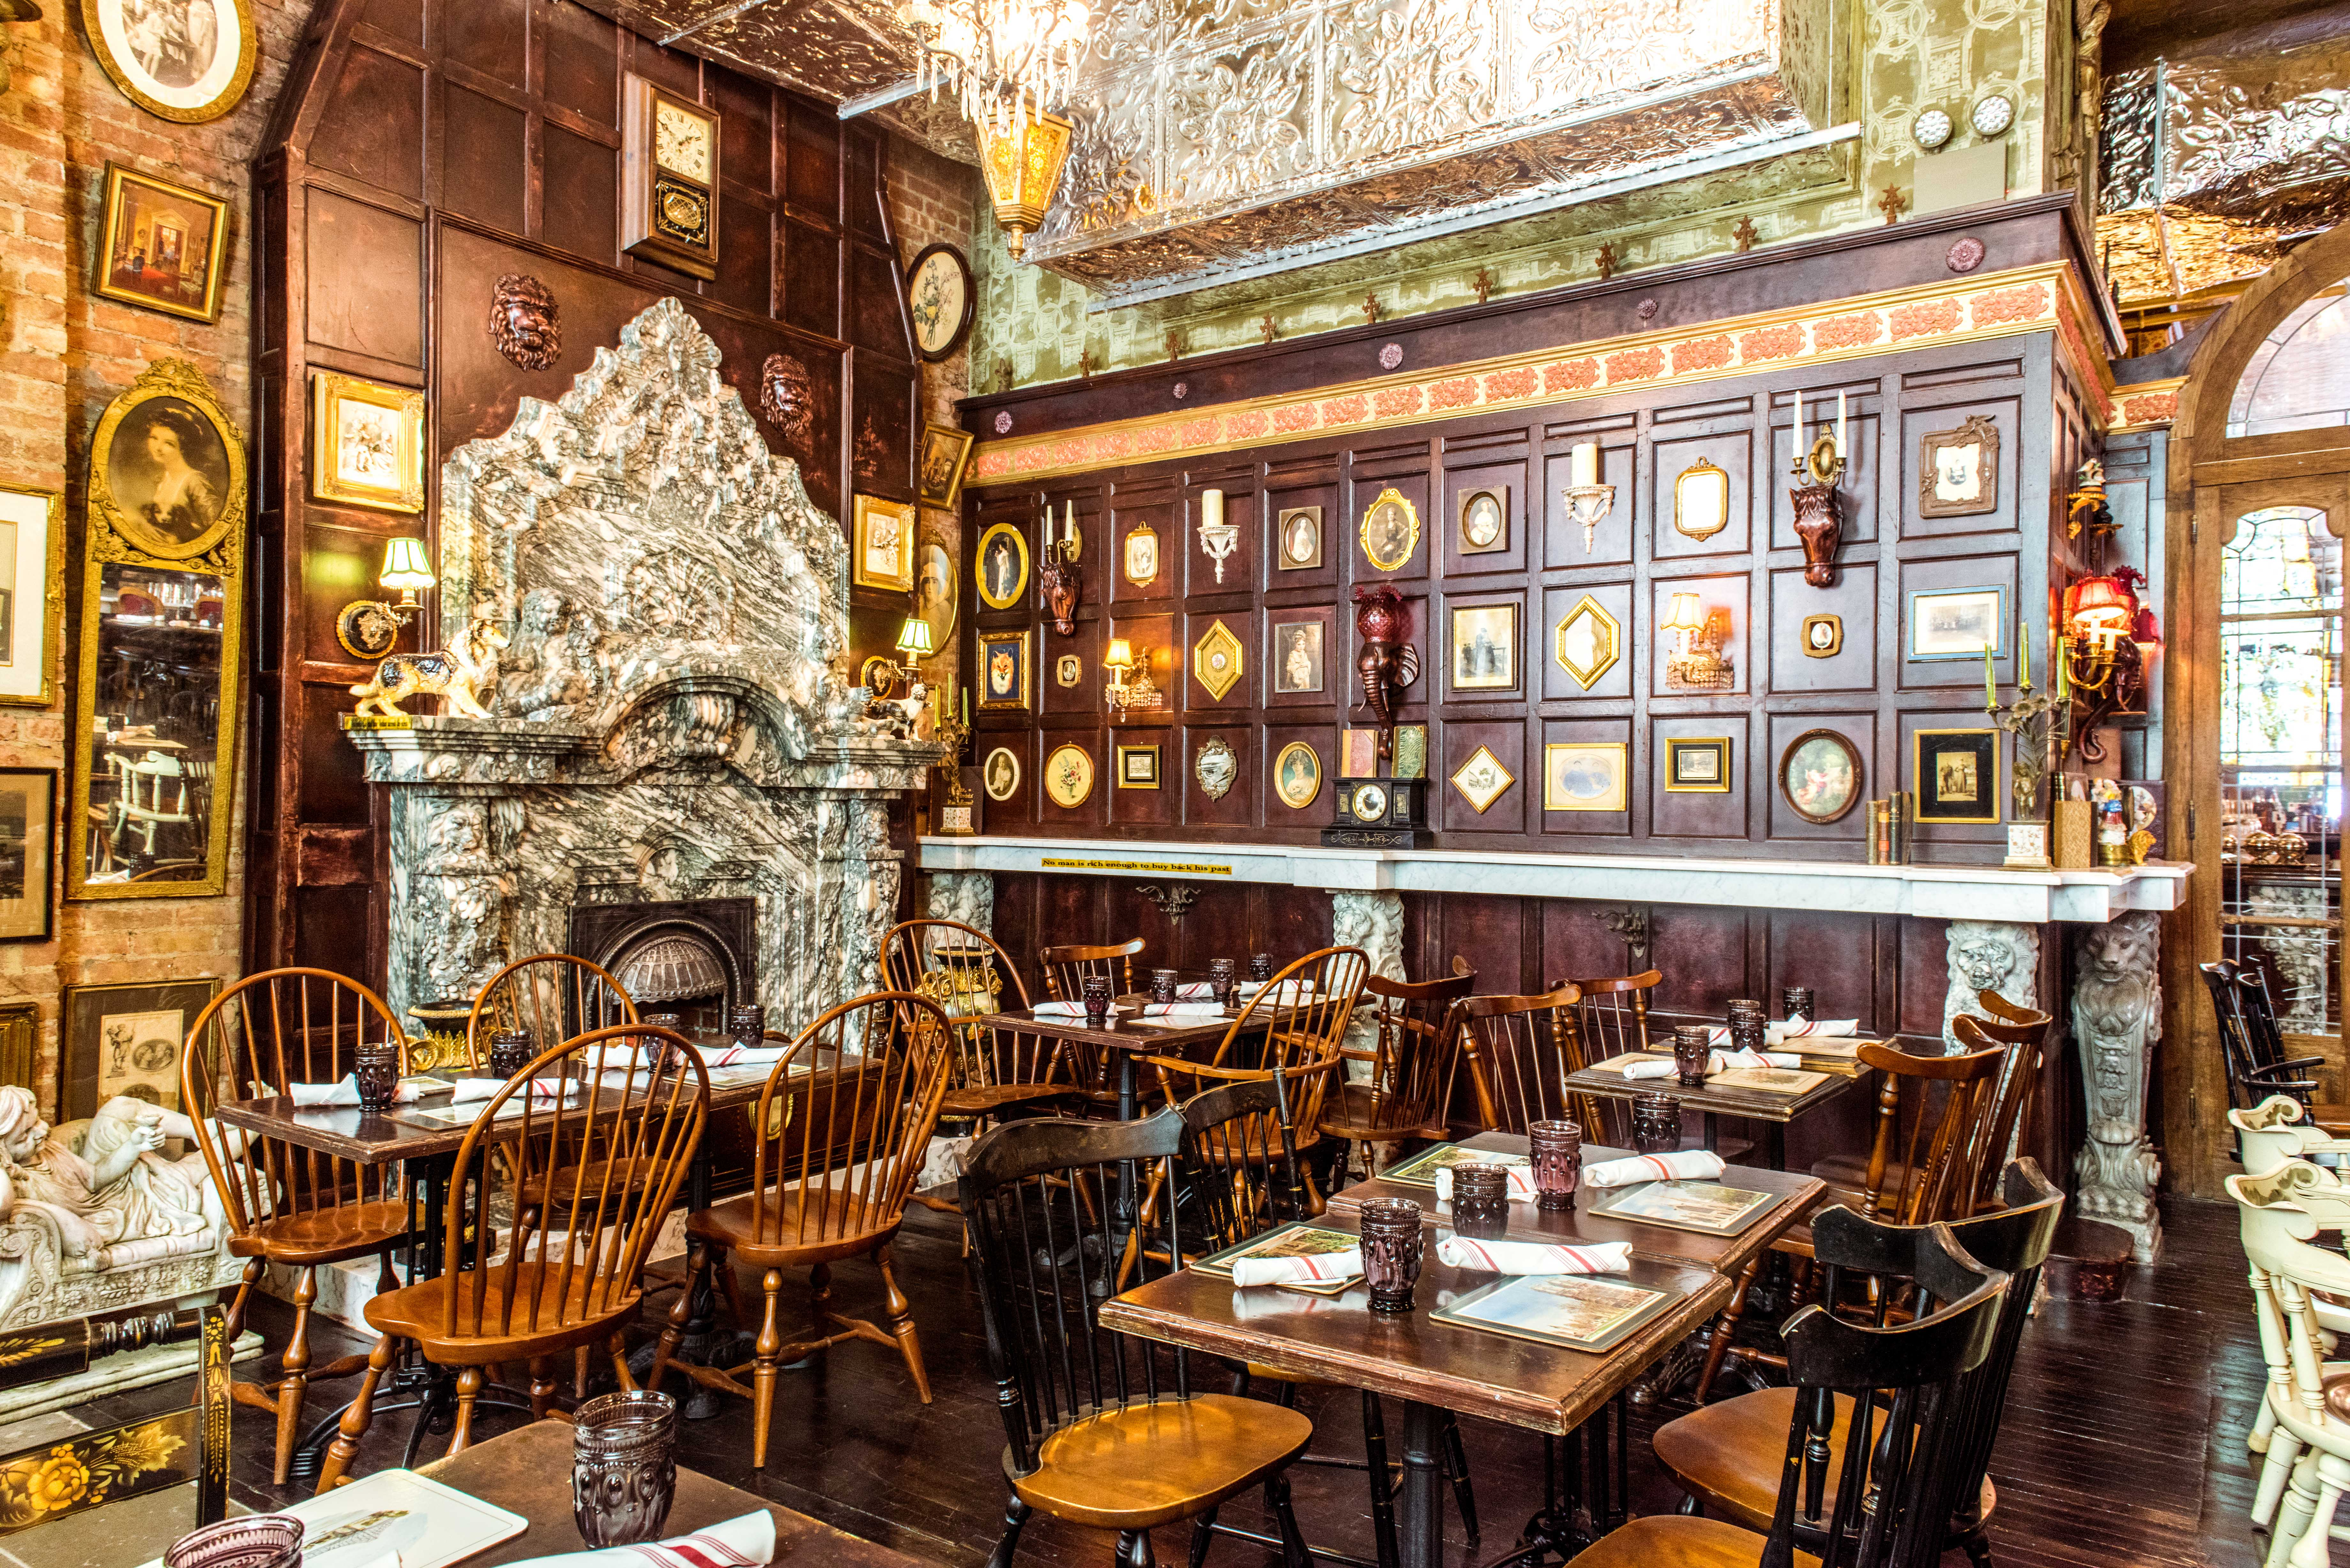 Where To Day Drink In Winter - New York - The Infatuation